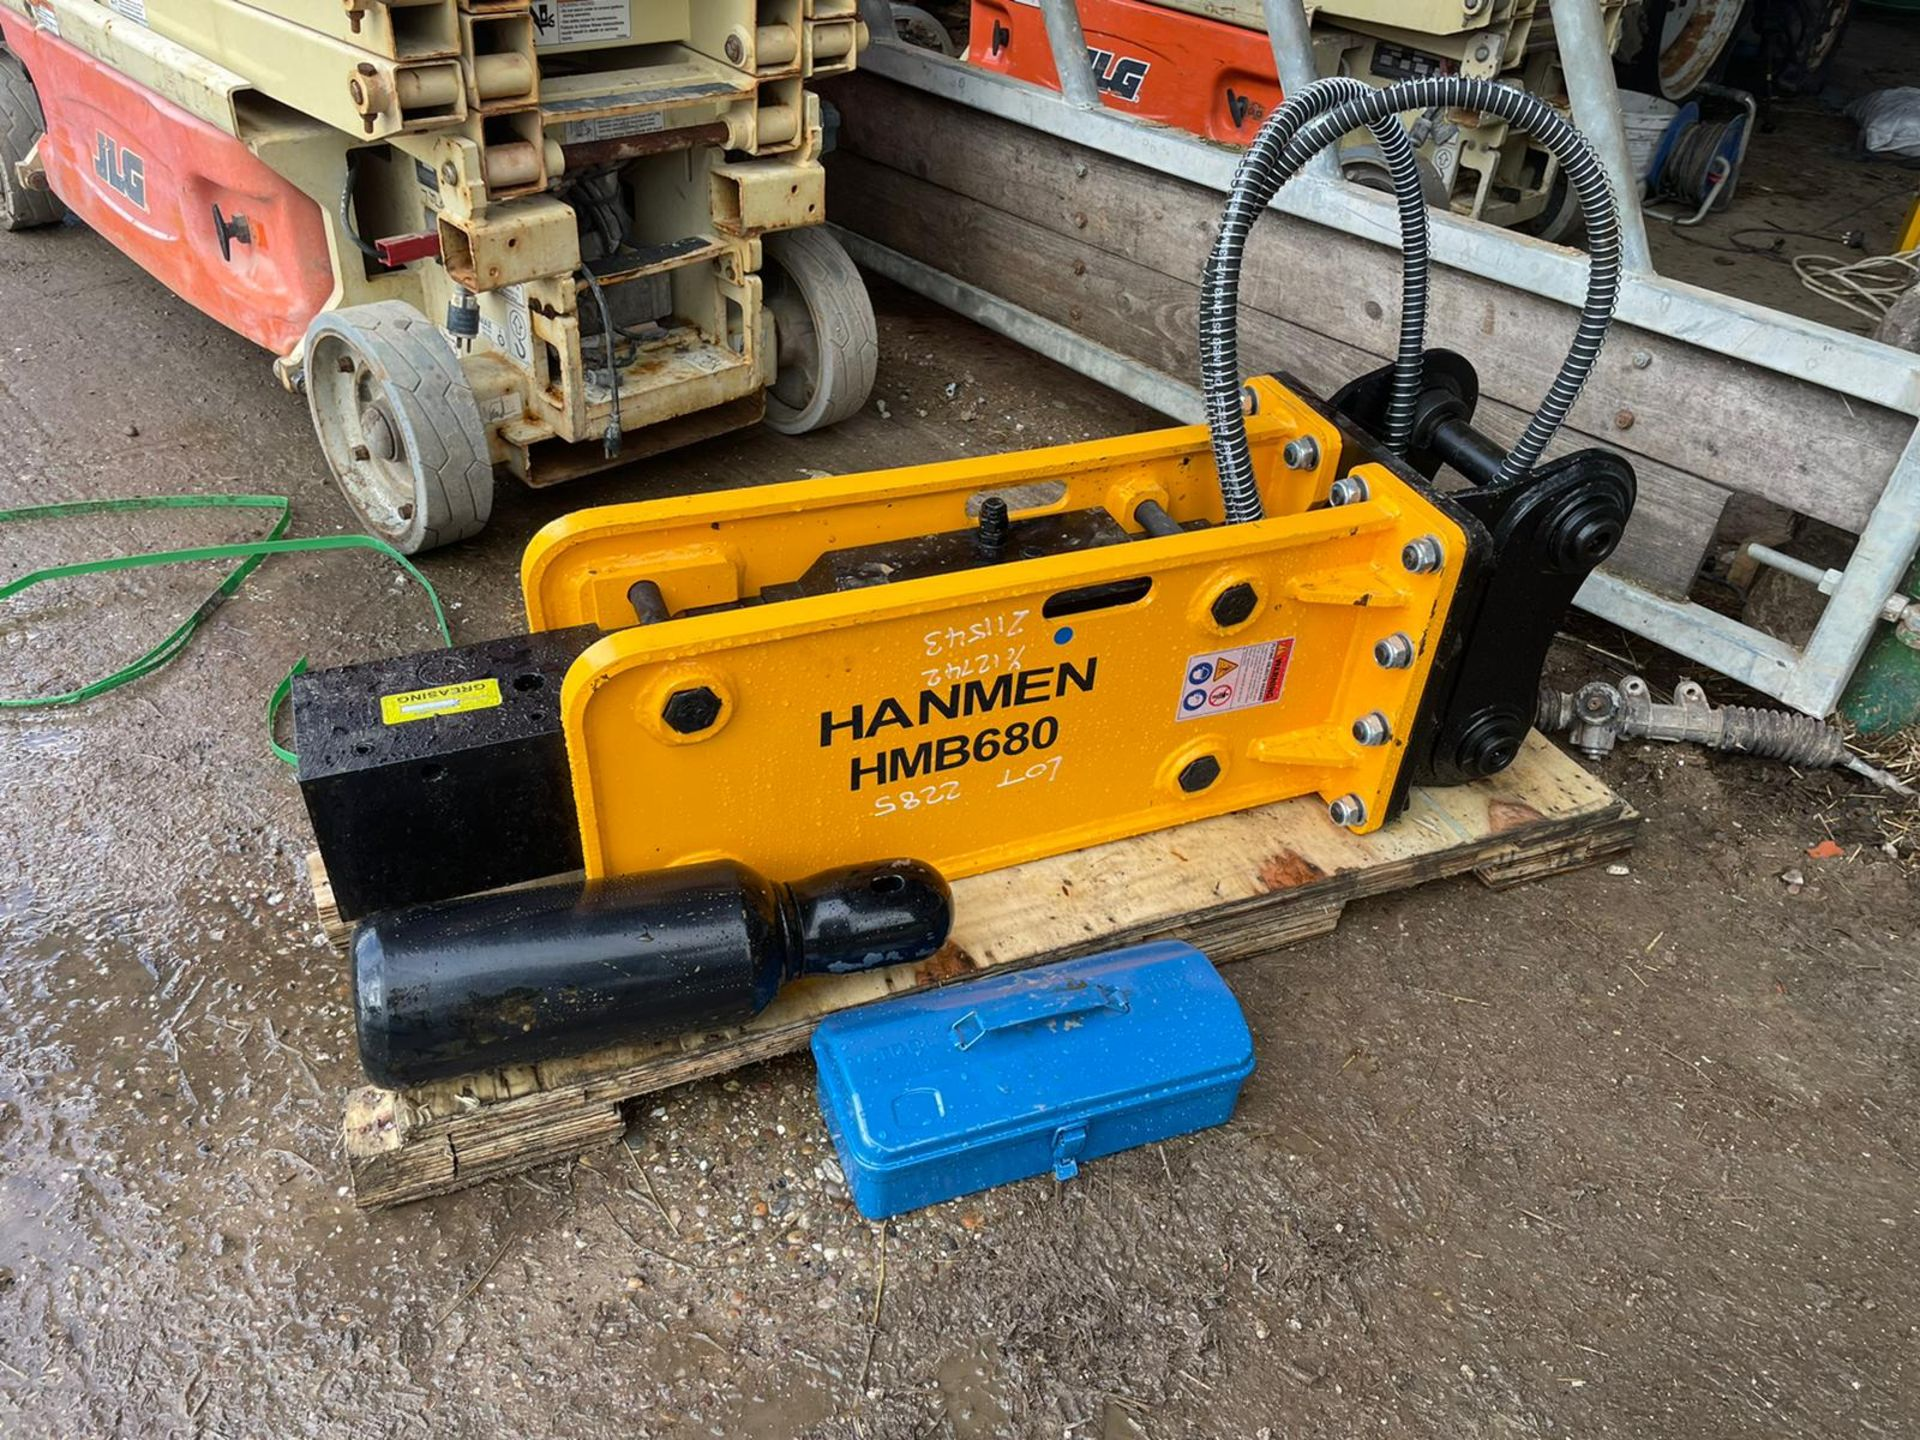 BRAND NEW, UNUSED HANMEN HMB680 BREAKER, SUITABLE FOR 5-8 TON EXCAVATOR, C/W PIPES, CHISEL, GAS KIT - Image 3 of 4